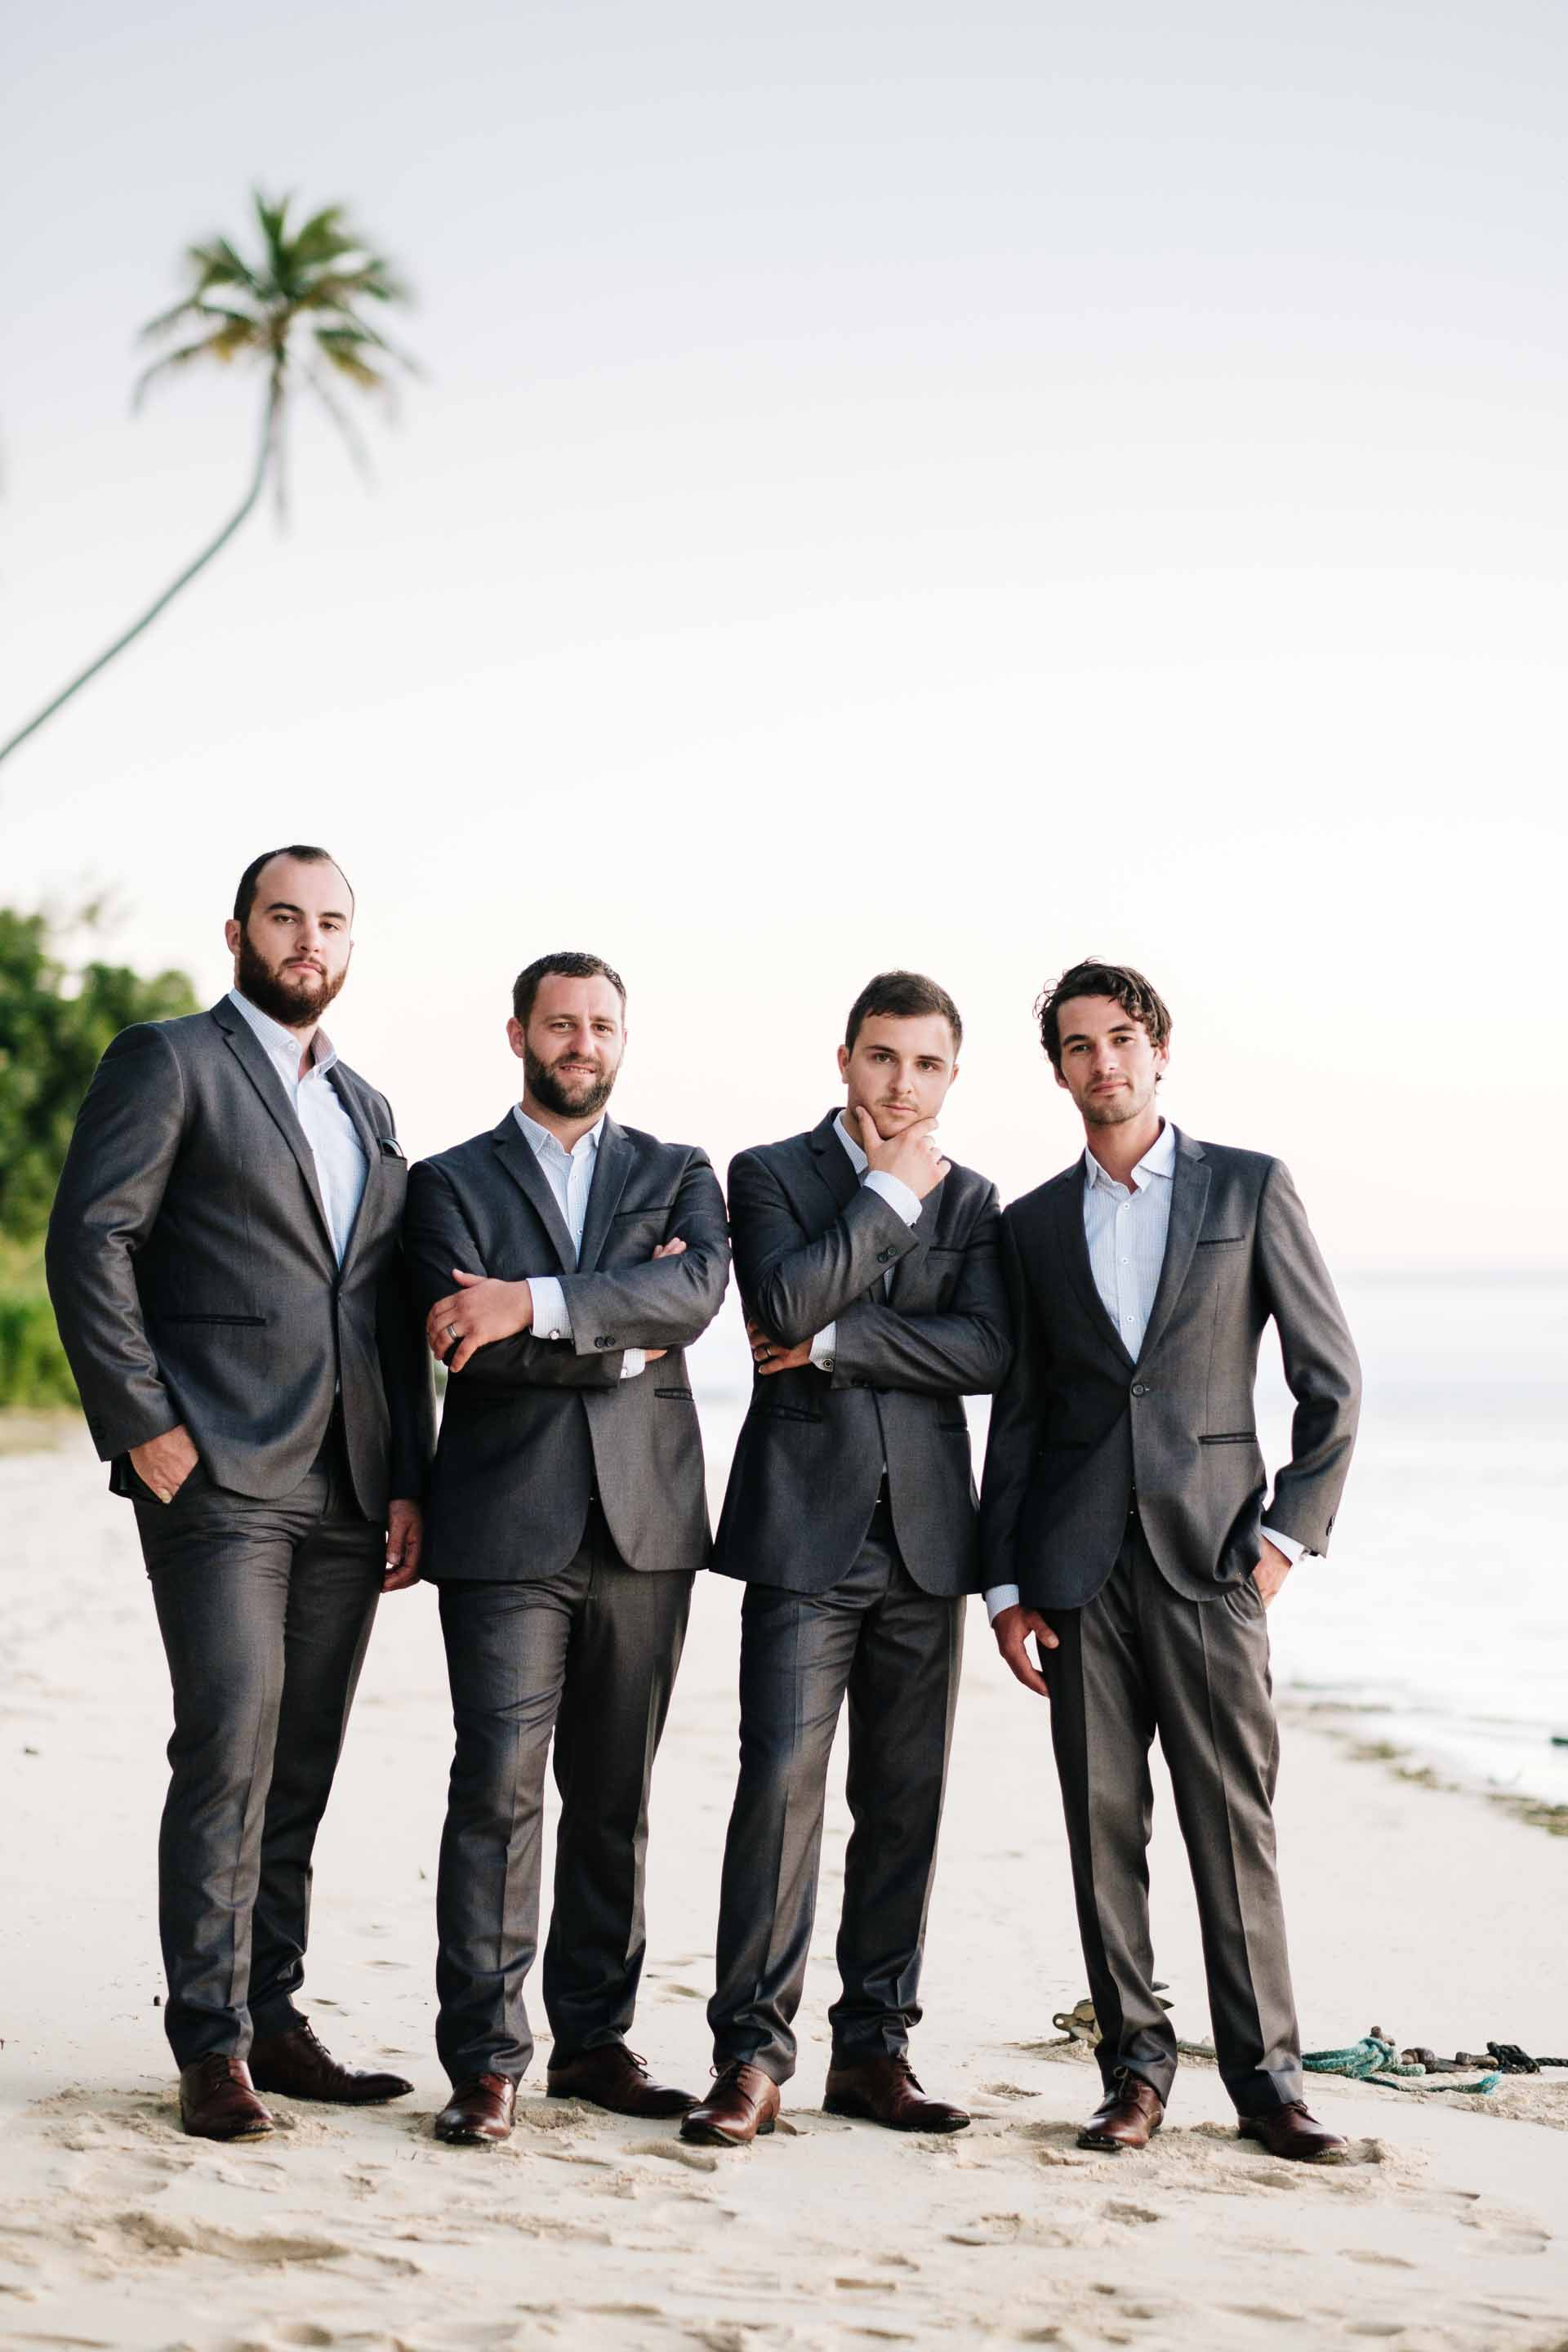 the groom and his groomsmen looking very suave on the beach at sunset